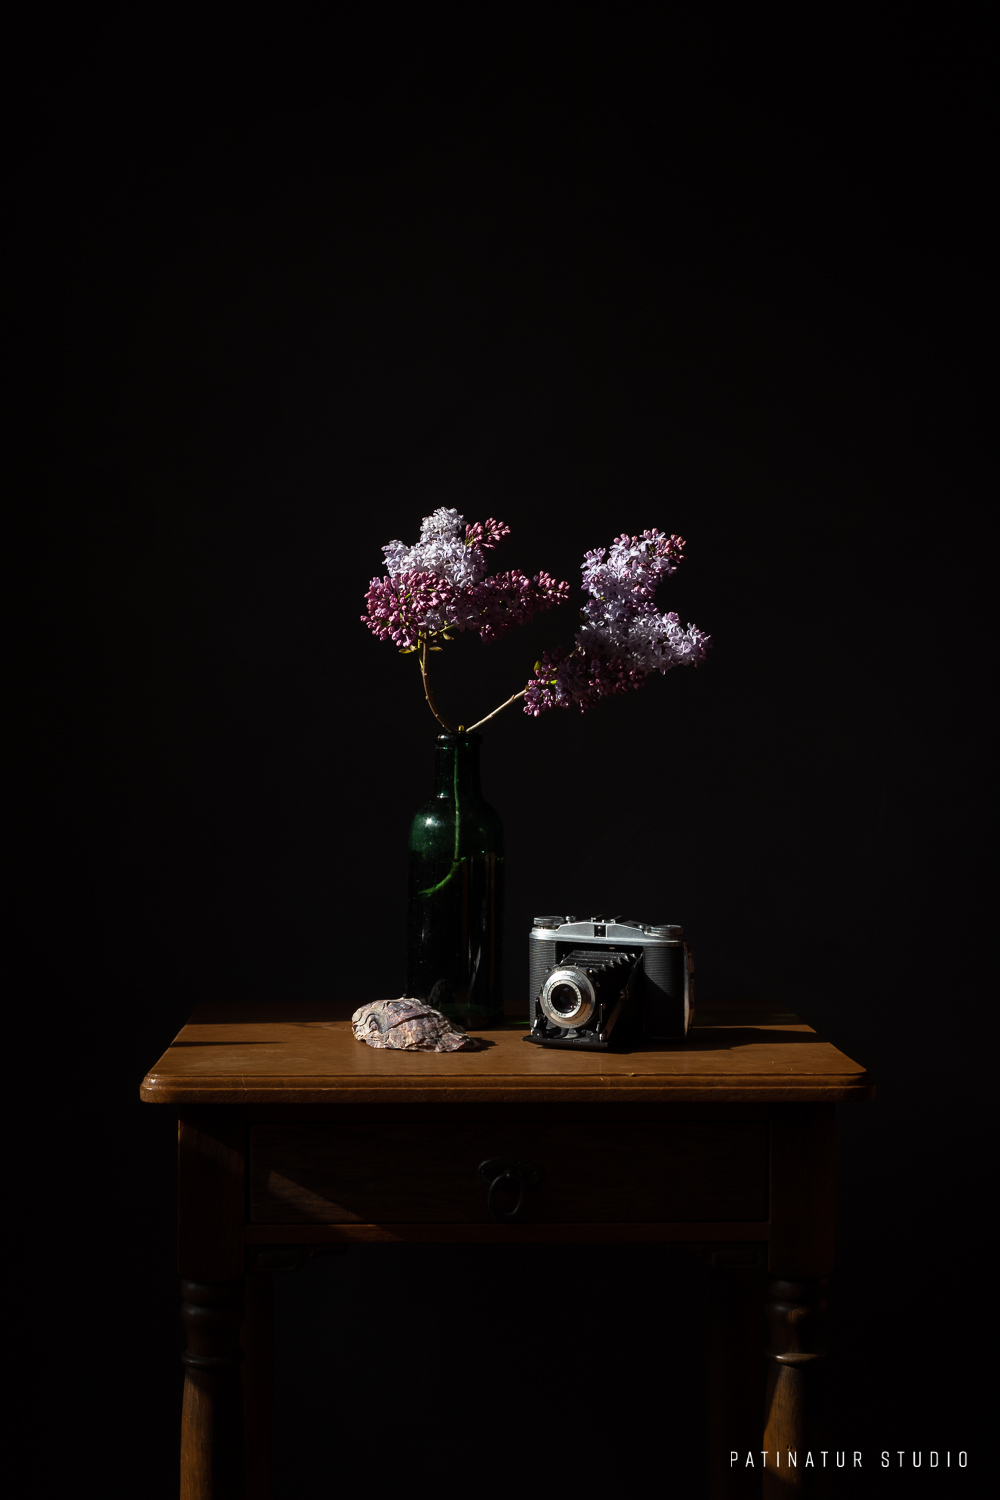 Photo Art | Dark and moody stalt cap images seoill life with lilacs, seashell and vintage camera